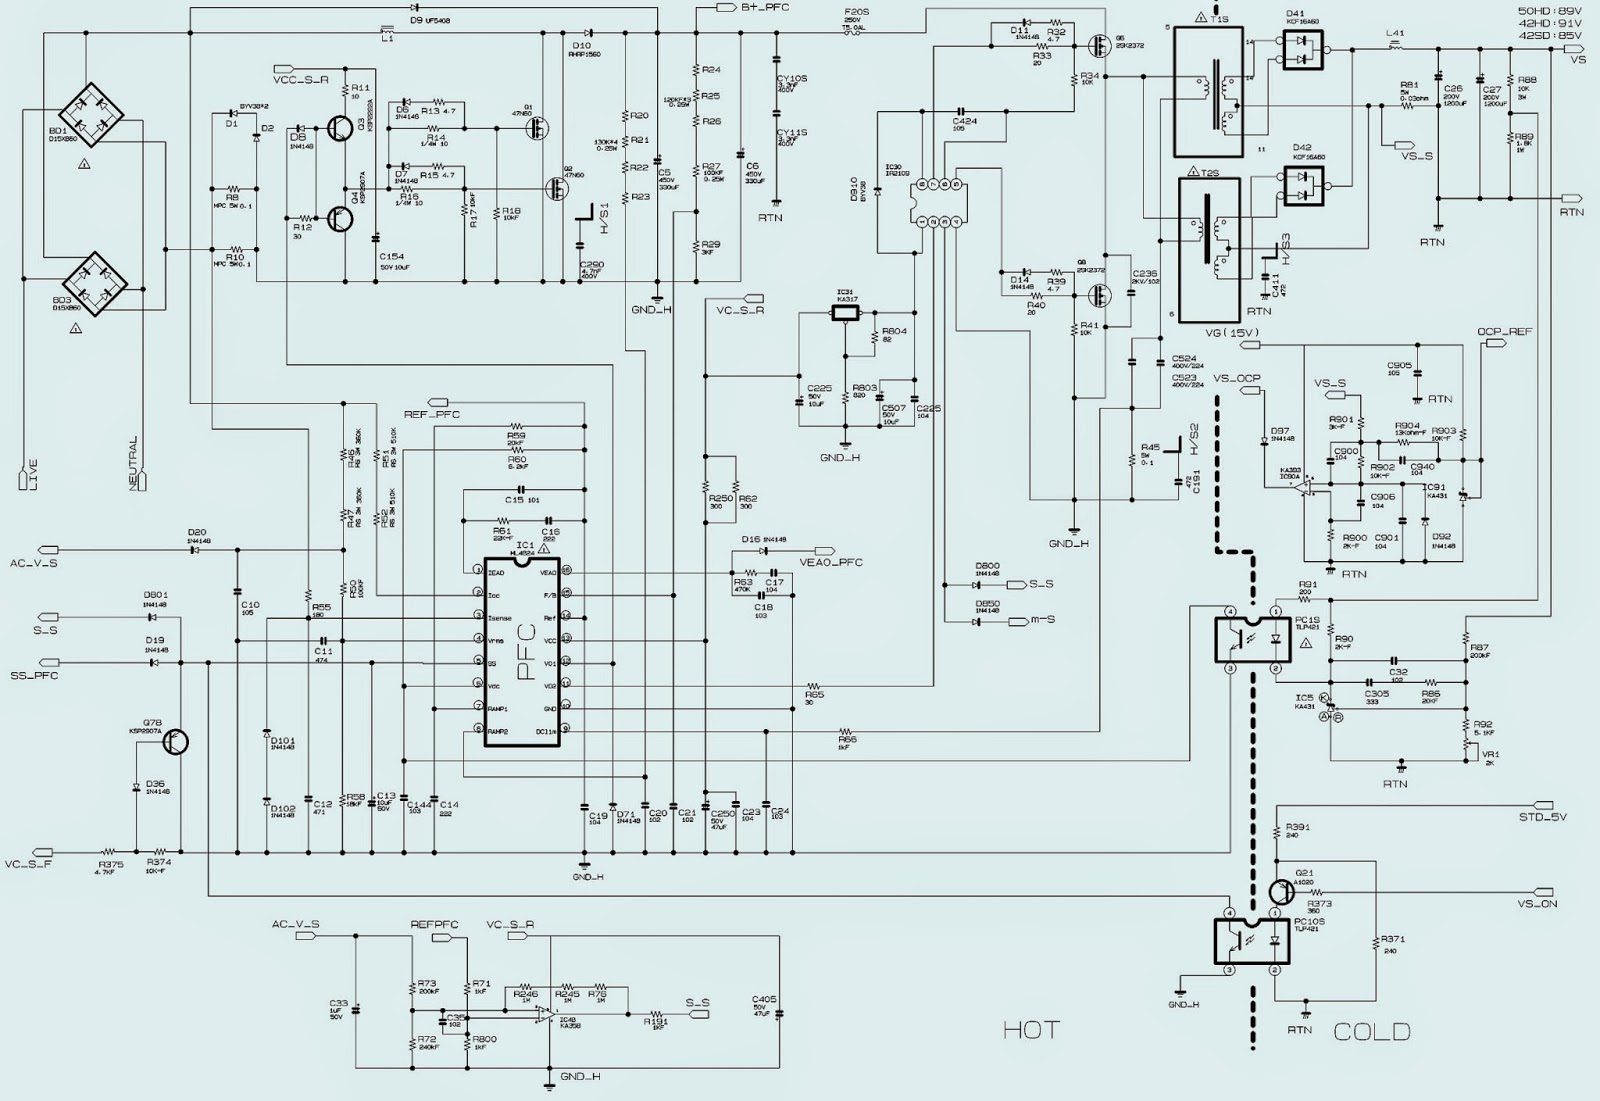 Peachy Smps Power Supply Circuit Diagram As Well Lcd Tv Power Supply Wiring Cloud Faunaidewilluminateatxorg